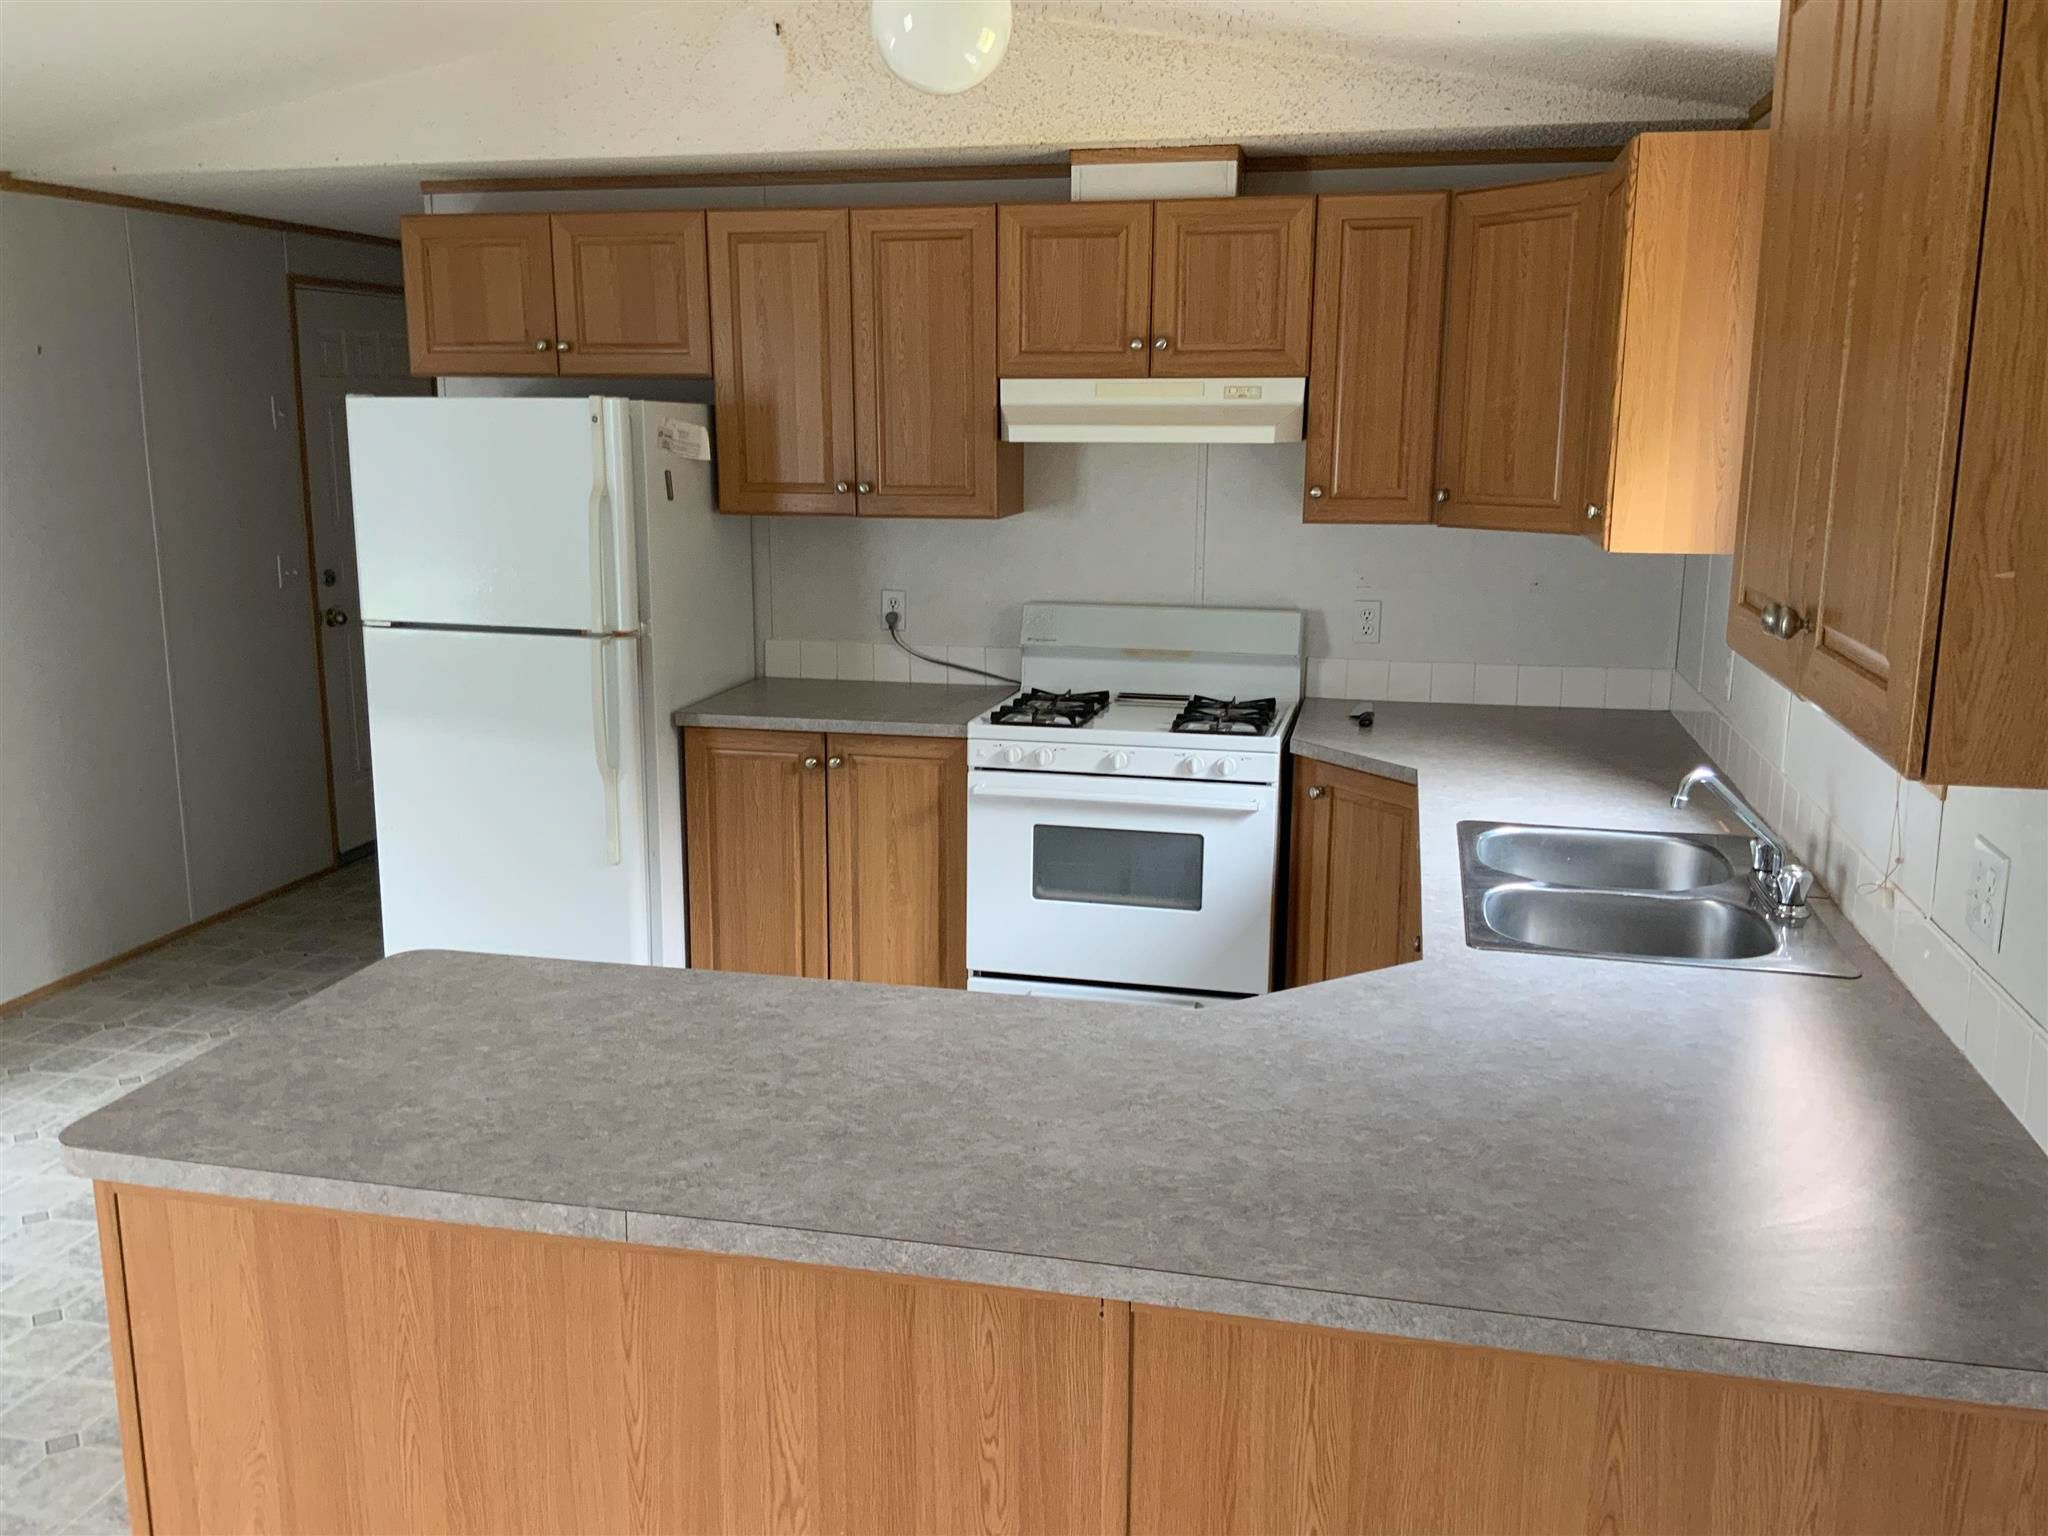 """Photo 3: Photos: 1206 GARCIA Road in Fort St. John: Fort St. John - Rural E 100th Manufactured Home for sale in """"GARCIA ROAD"""" (Fort St. John (Zone 60))  : MLS®# R2597287"""